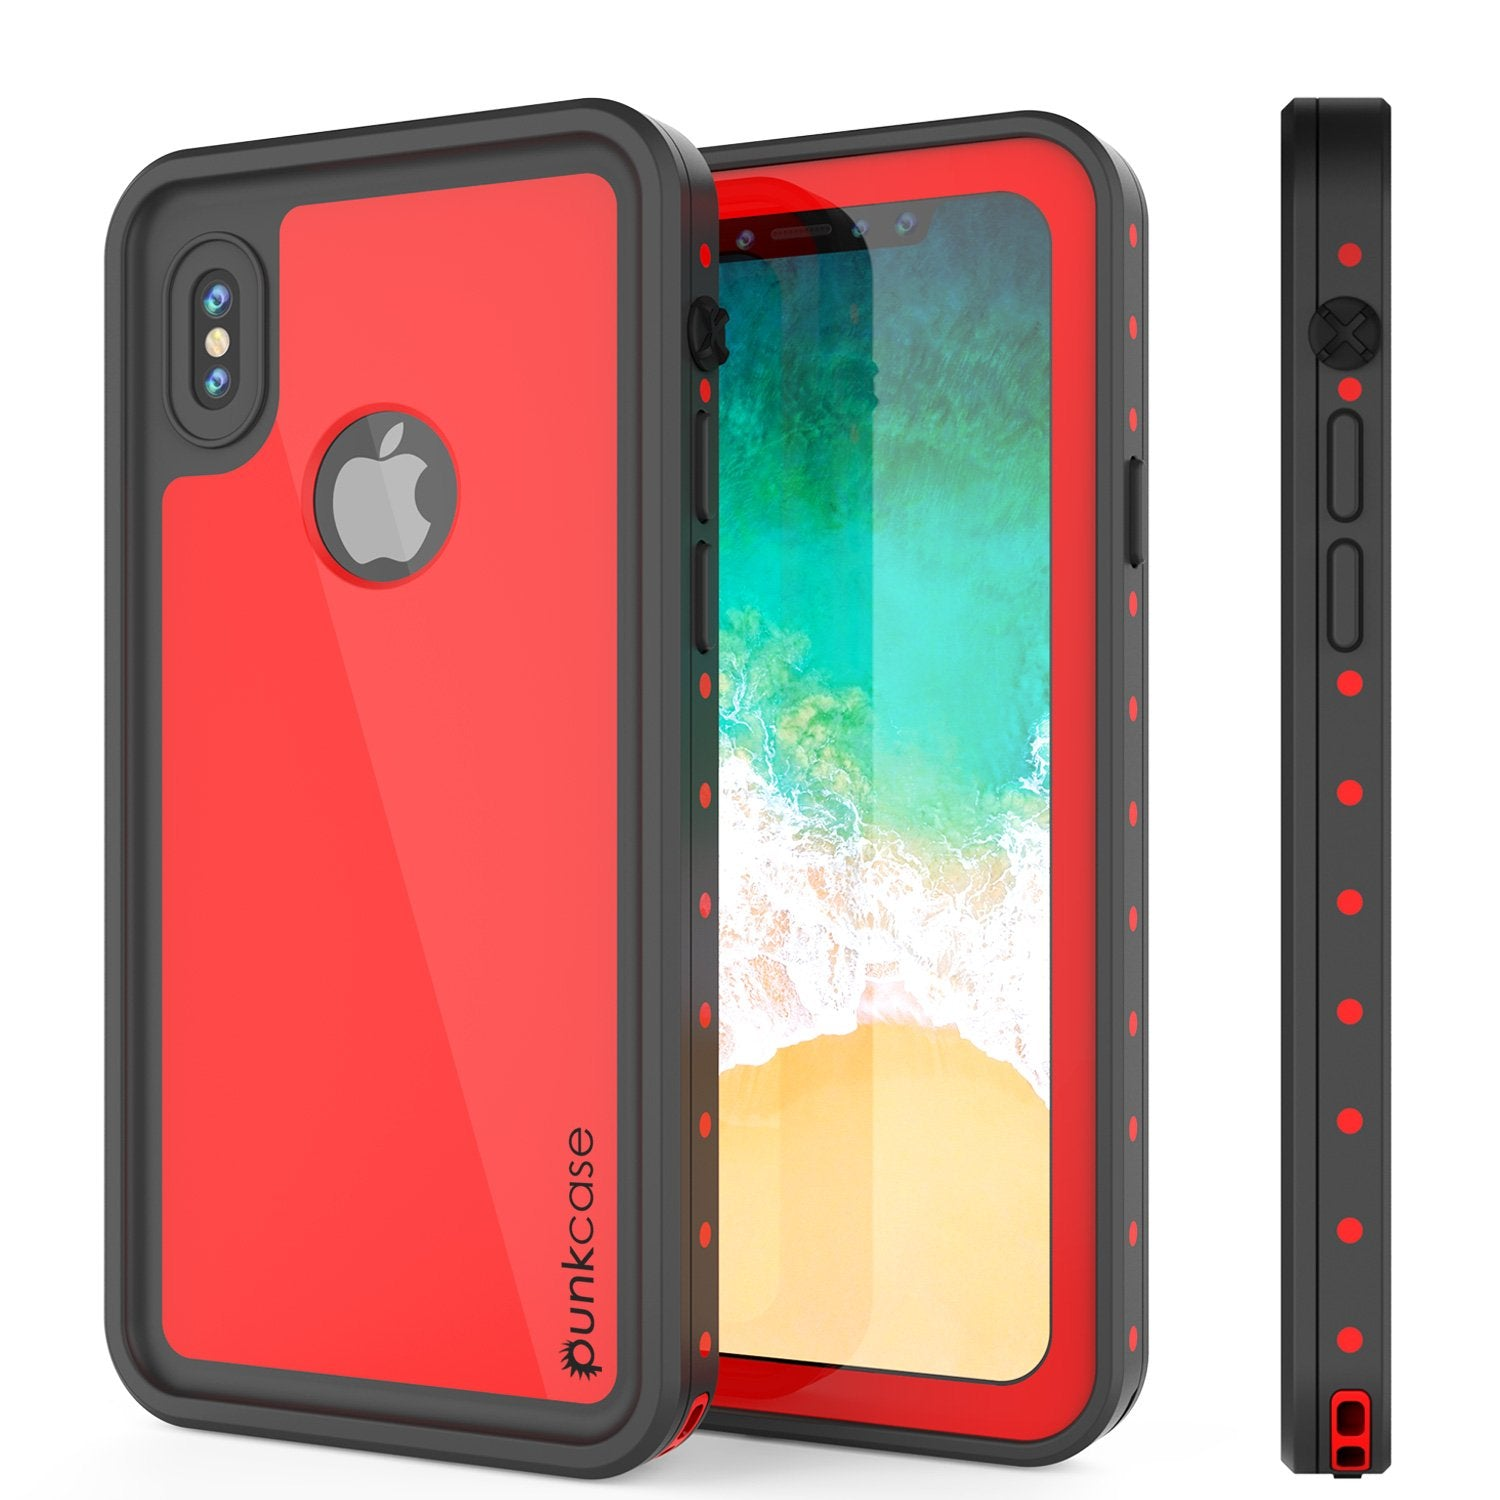 iPhone X Waterproof IP68 Case, Punkcase [Red] [StudStar Series] [Slim Fit] [Dirtproof]